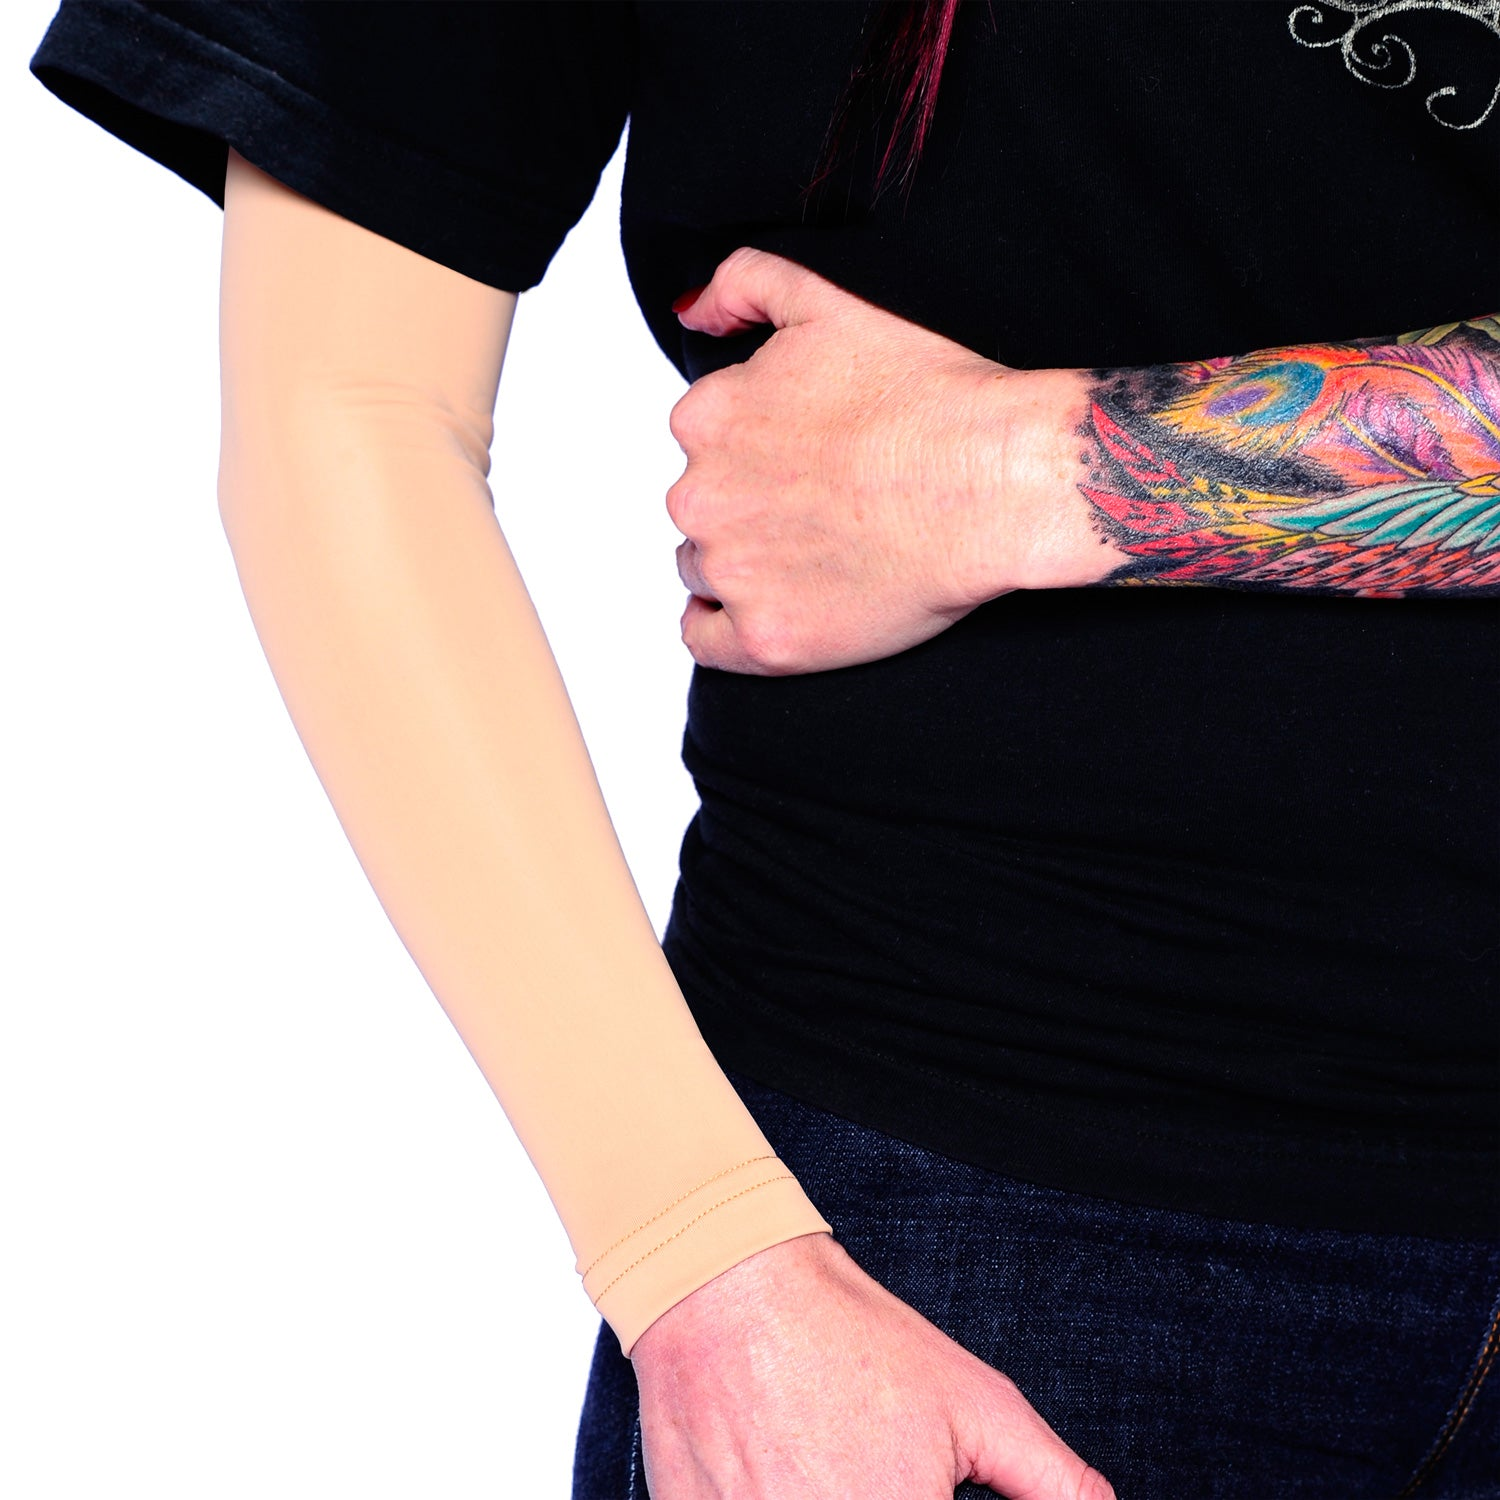 Full Arm Flesh Colored Sleeves to Cover Tattoos | Tat2X Tattoo Covers